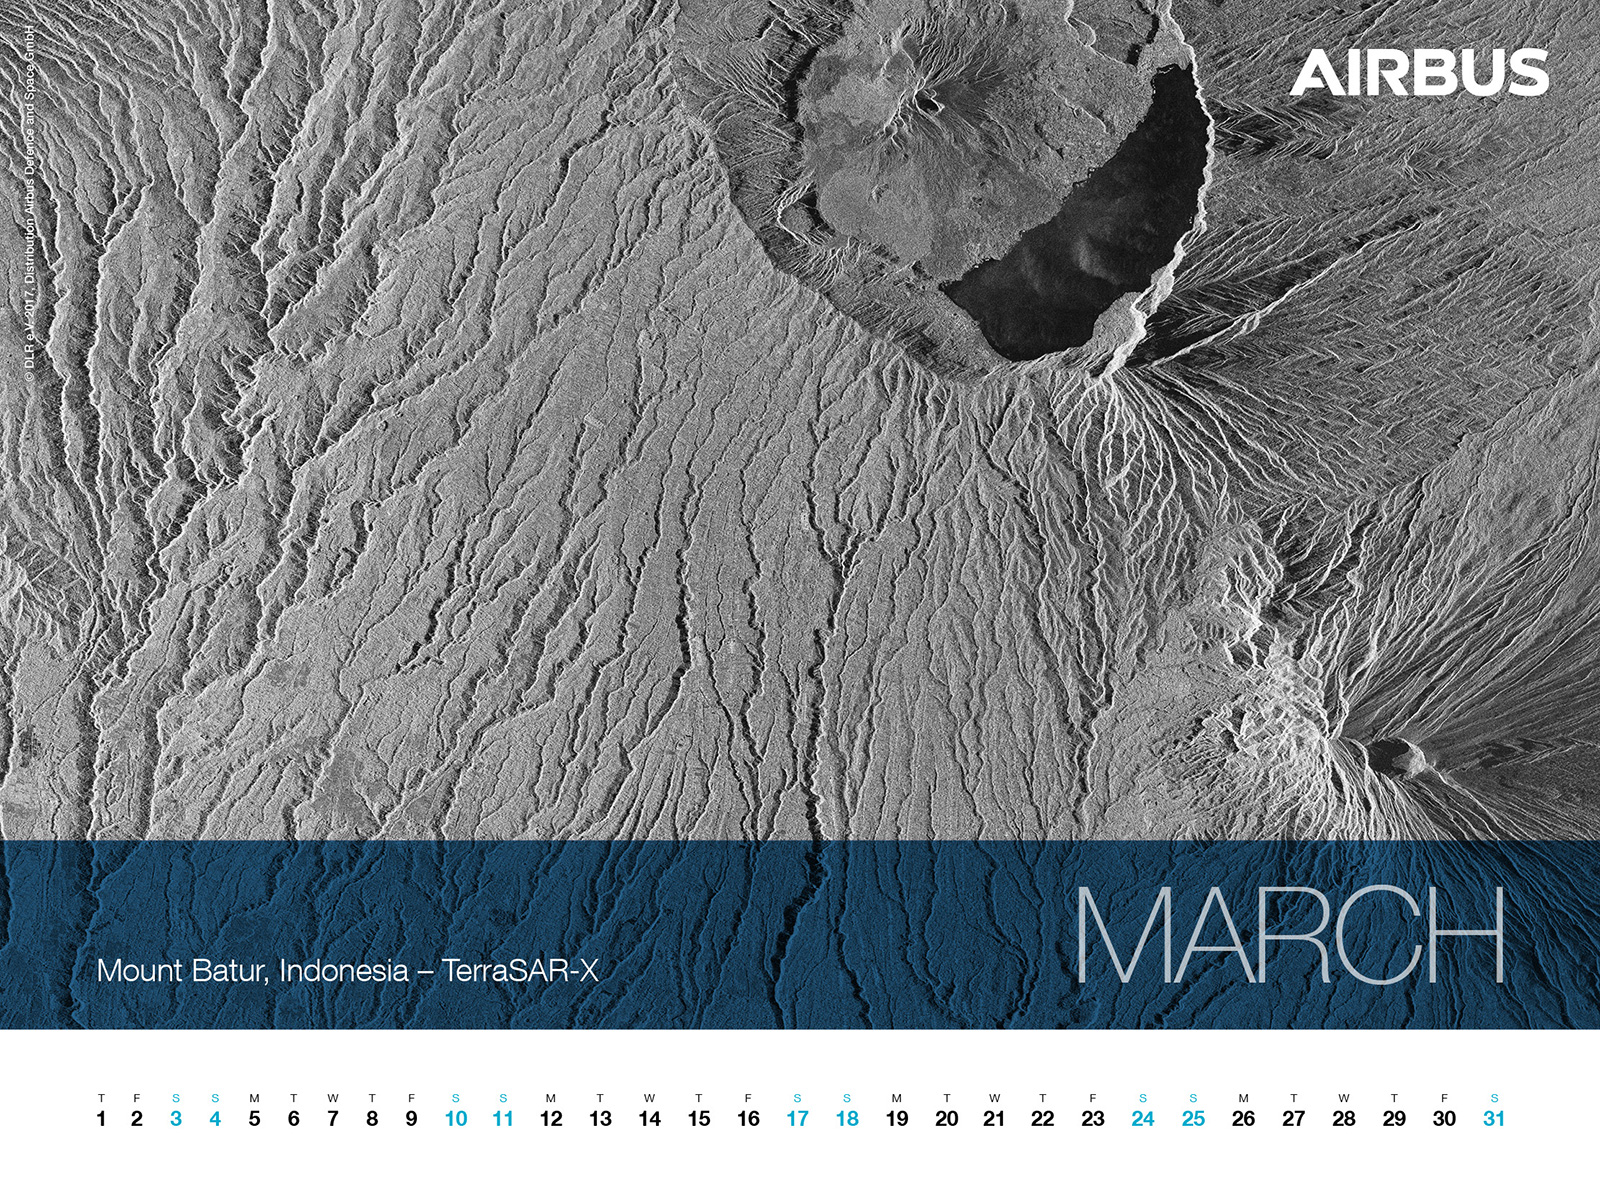 Calendar 2018 -March - TerraSAR-X image - Mount Batur, Indonesia - 1600x1200